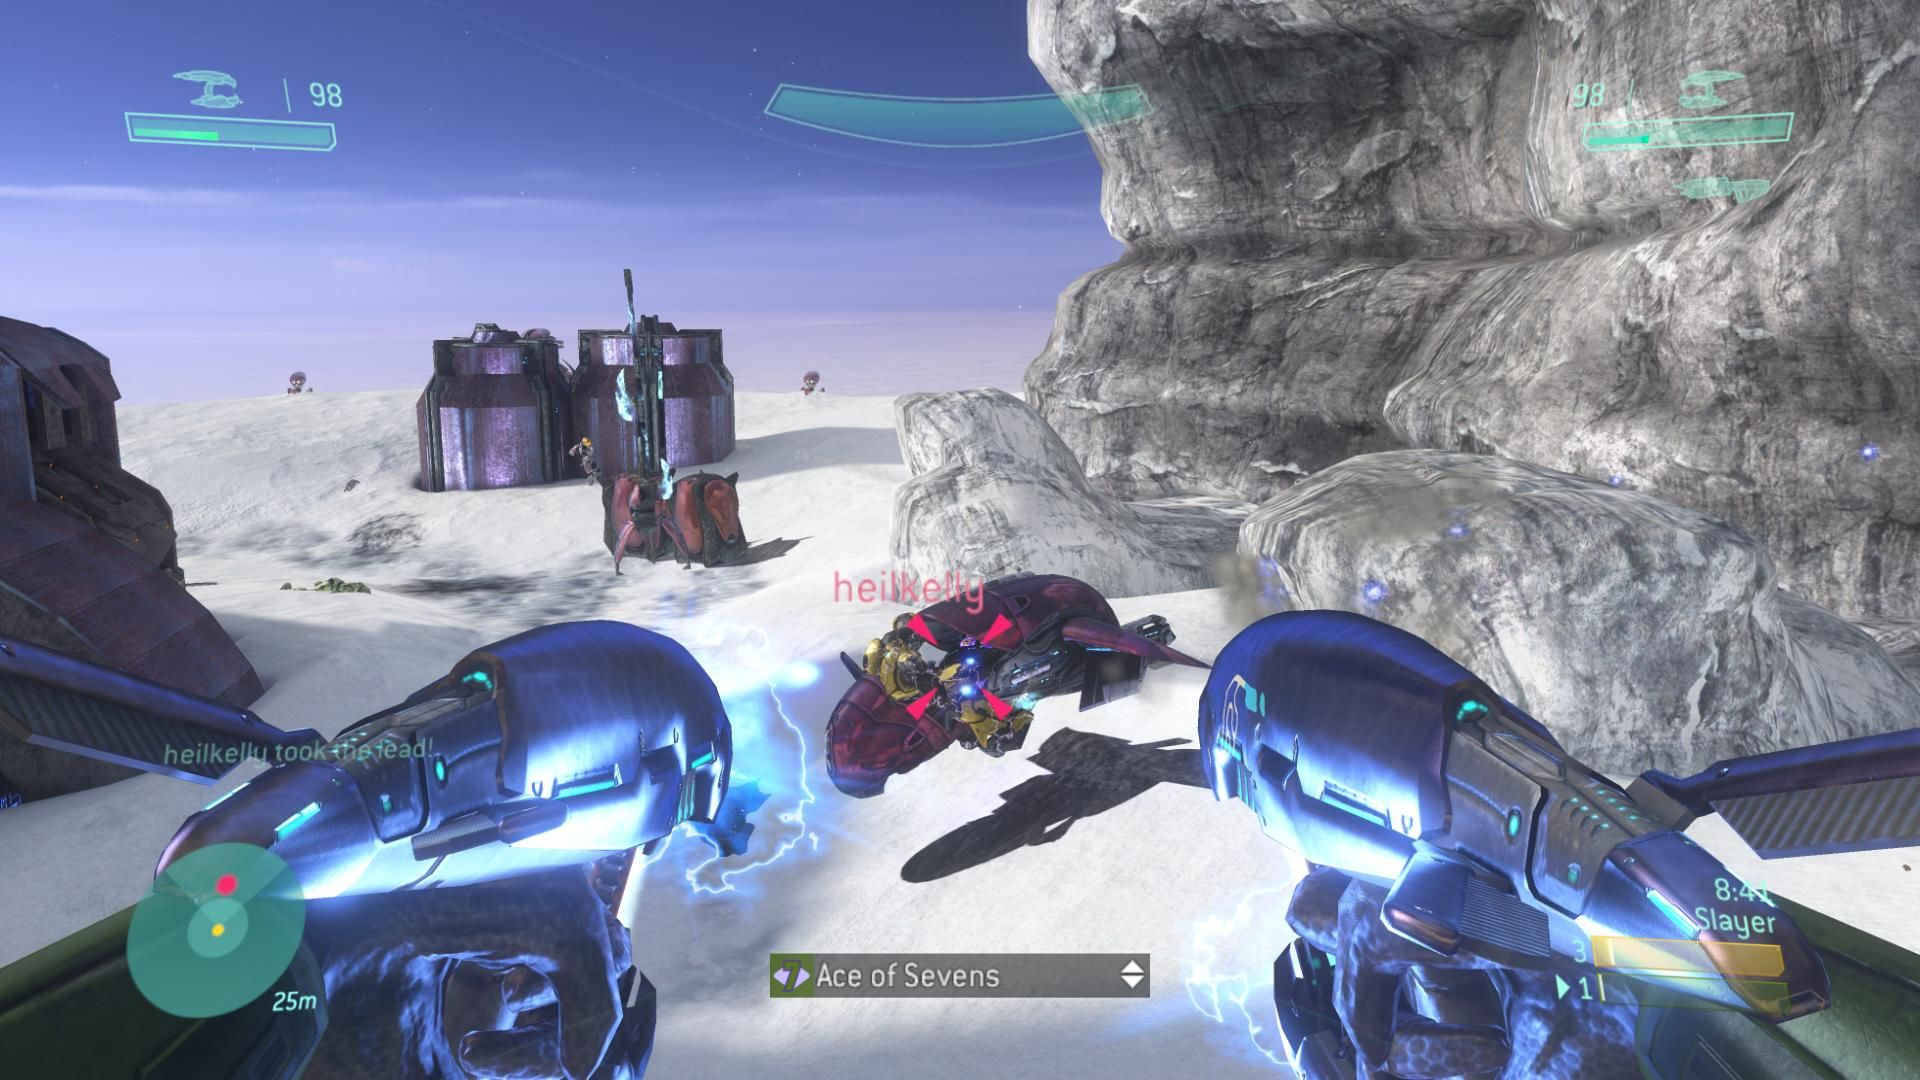 Halo 3 Xbox 360 Double plasma pistols take down a Ghost on Snowbound.